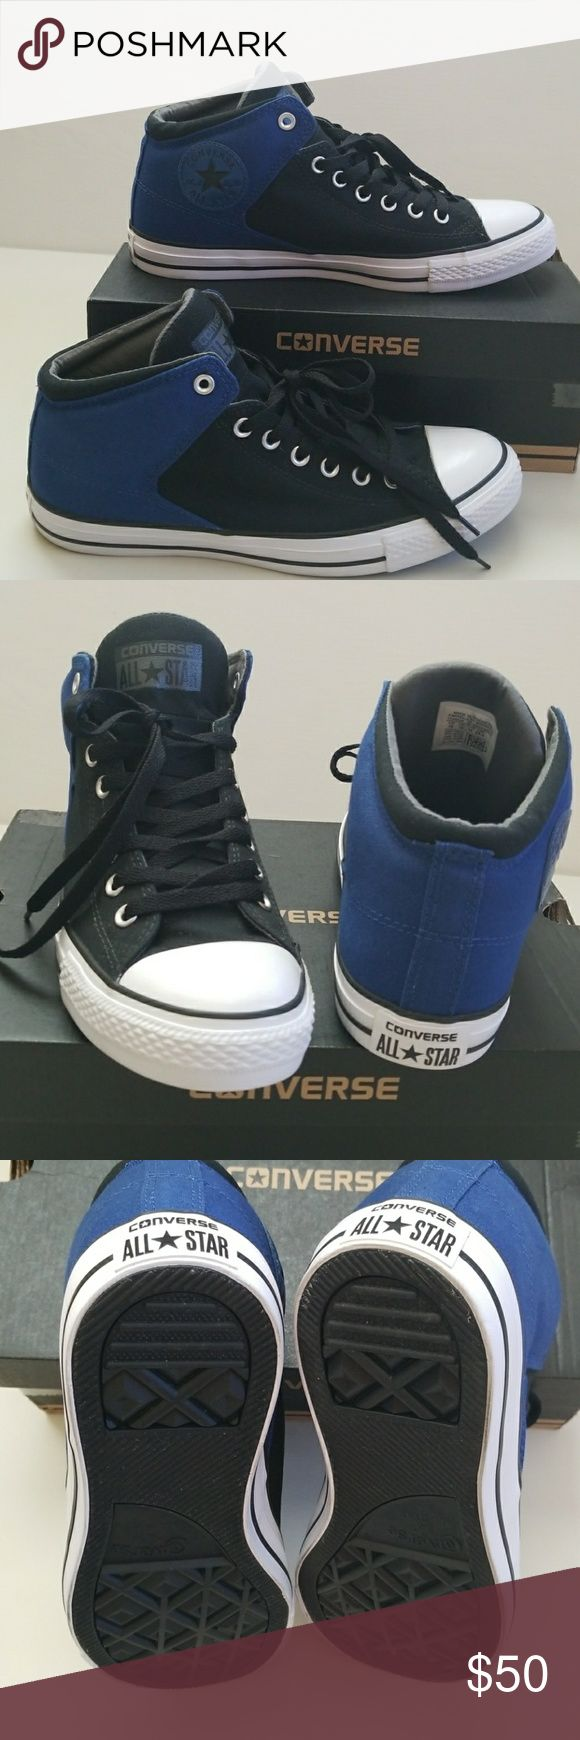 NWT Men's Converse New super cool Converse hi-tops. Thicker canvas, padded collar,  perfect for cooler weathers. Converse Shoes Sneakers